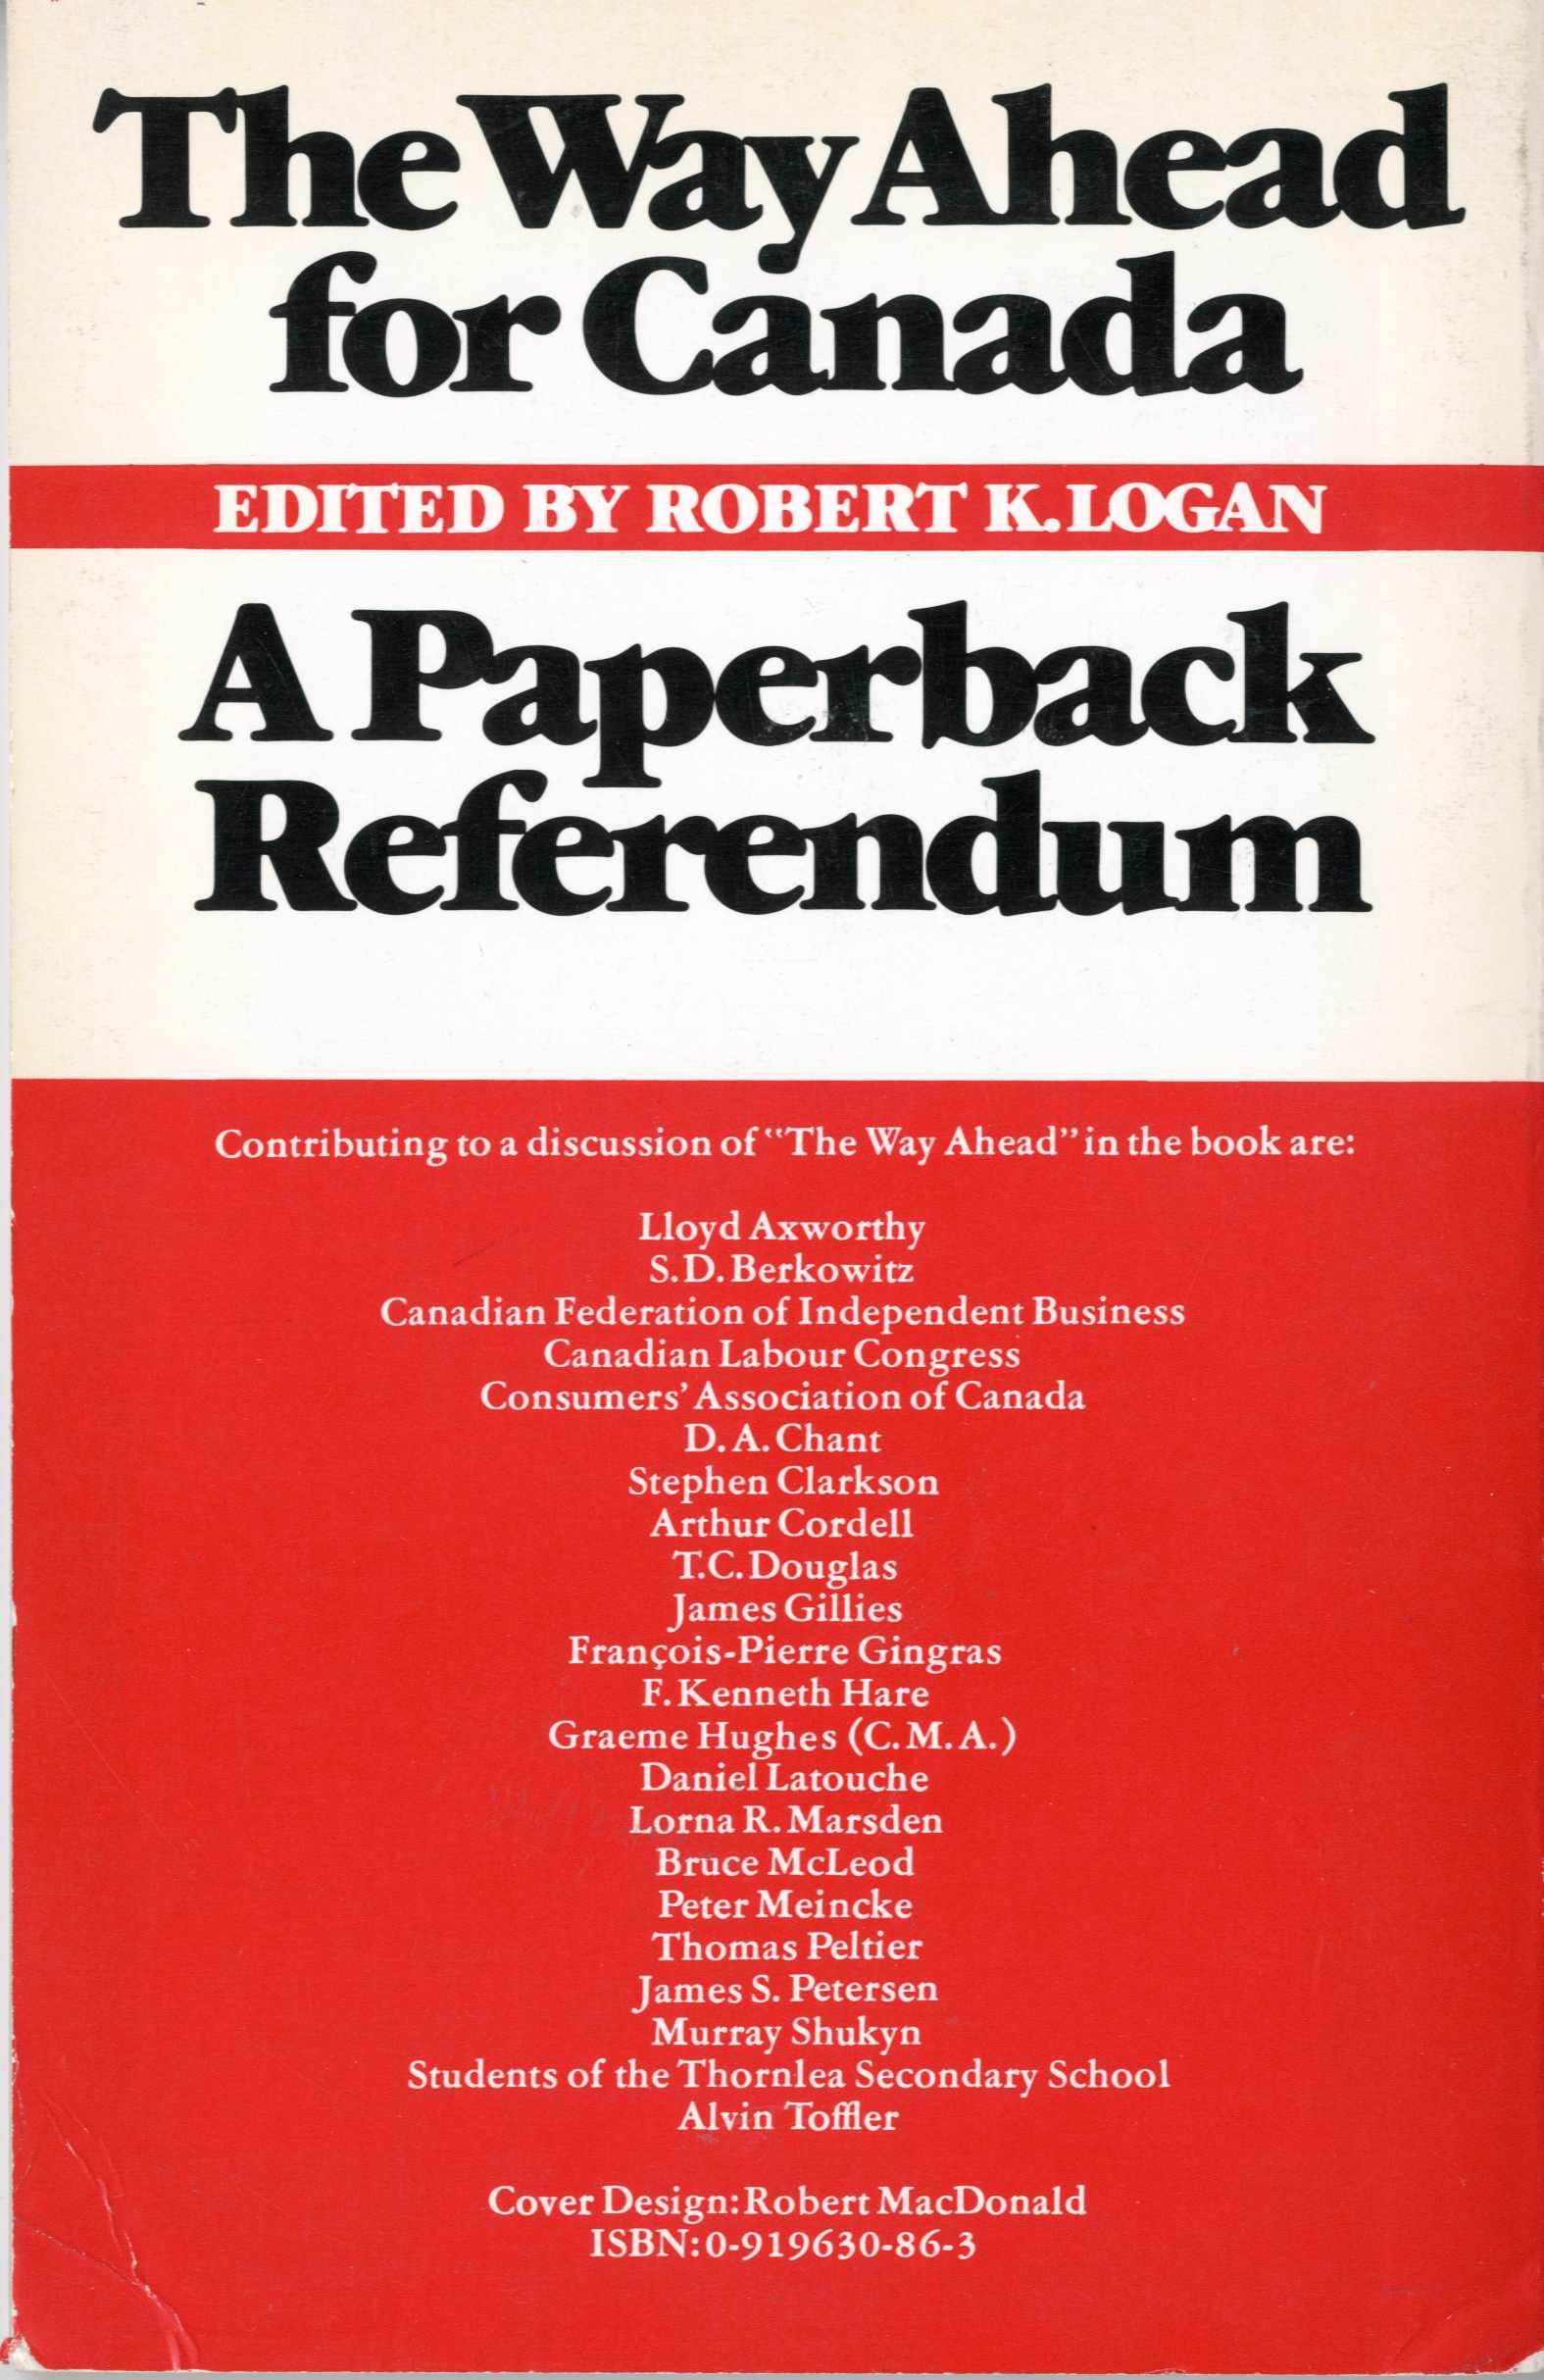 The Way Ahead for Canada: A Paperback Referendum Image